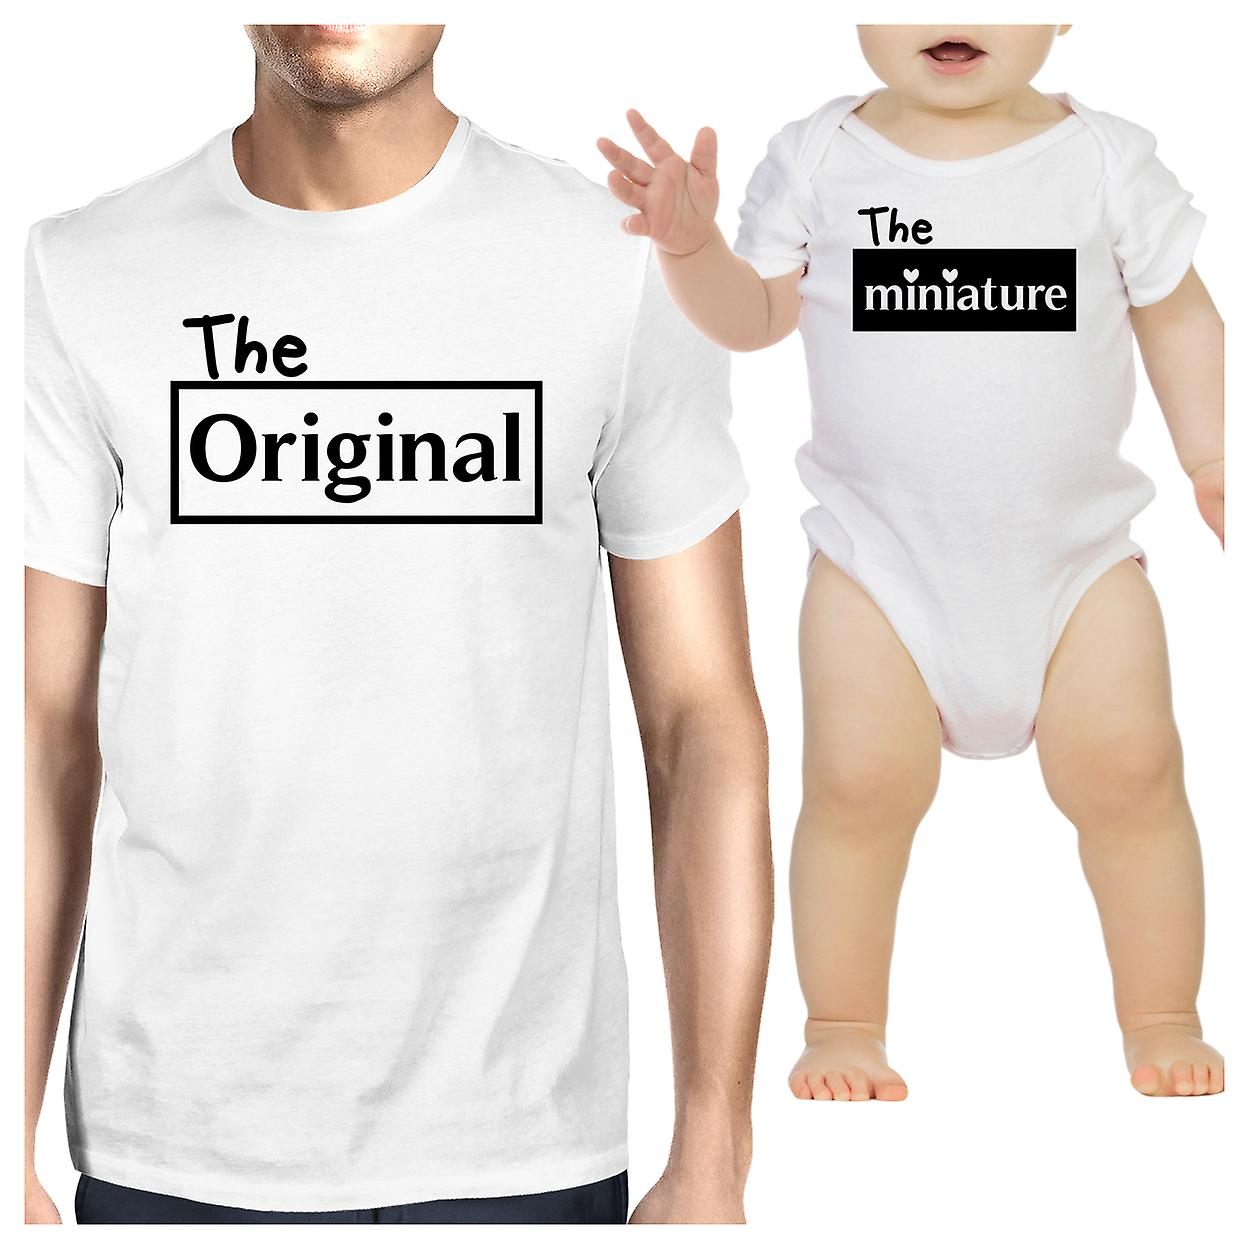 fe88db81 Original And Mini Cute Dad Baby Boy Shirts Funny Fathers Day Gifts ...